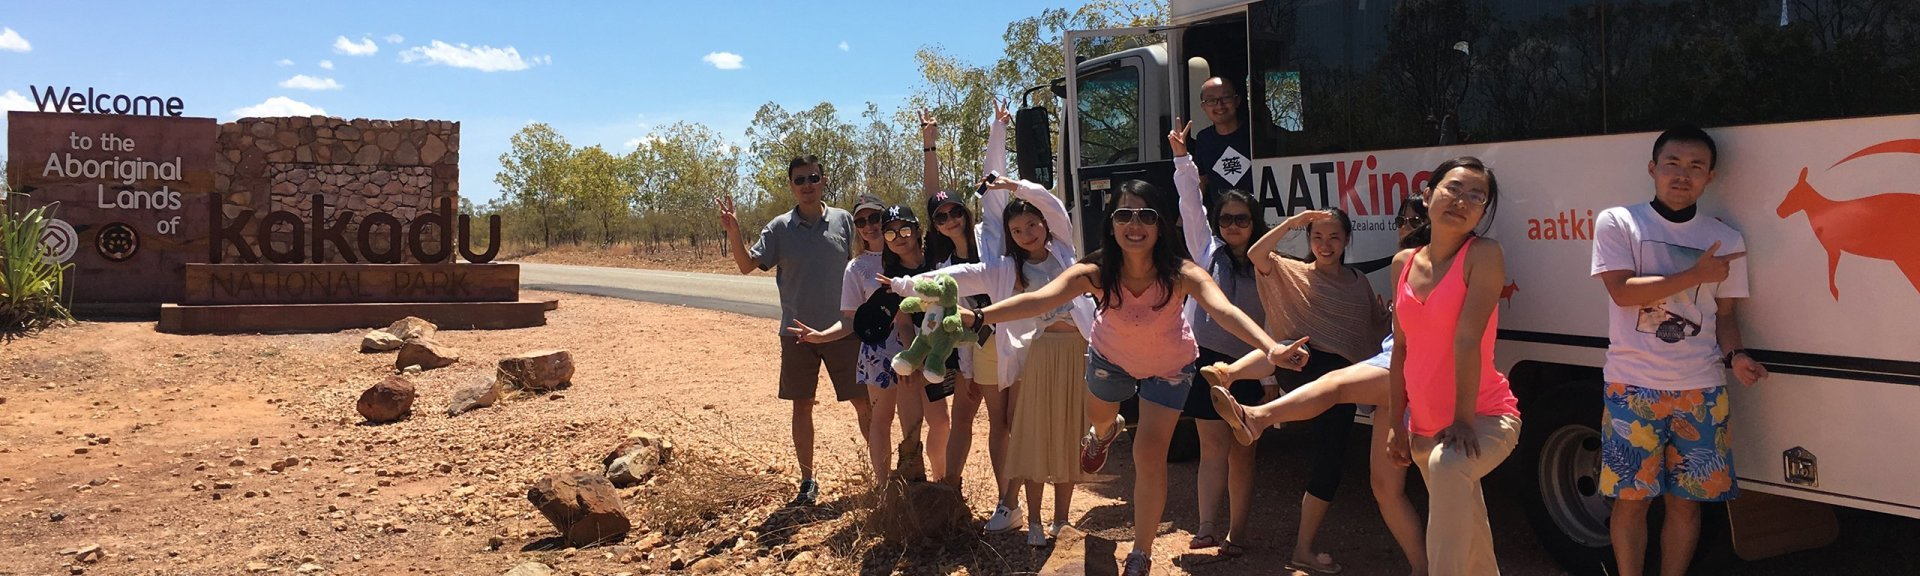 Sightseeing in Kakadu. Photo: North Tours